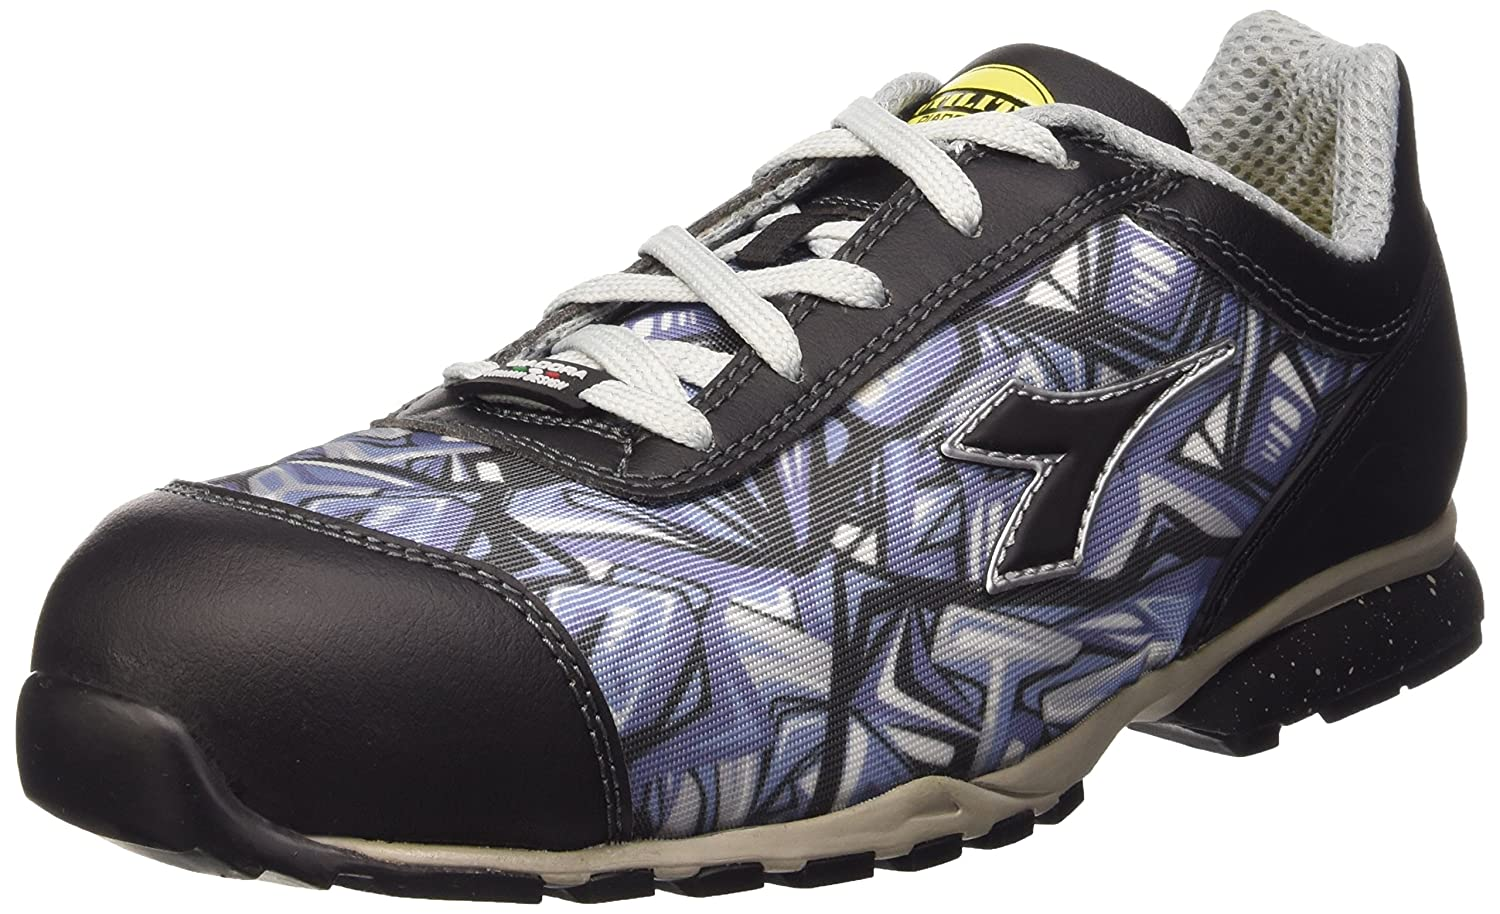 Diadora Chaussures D-399 Textile Low S1p HRO SRC, Chaussures de Low (C2368 Sécurité Mixte Adulte Multicolore (C2368 Grigio/Blu) 286ccab - therethere.space